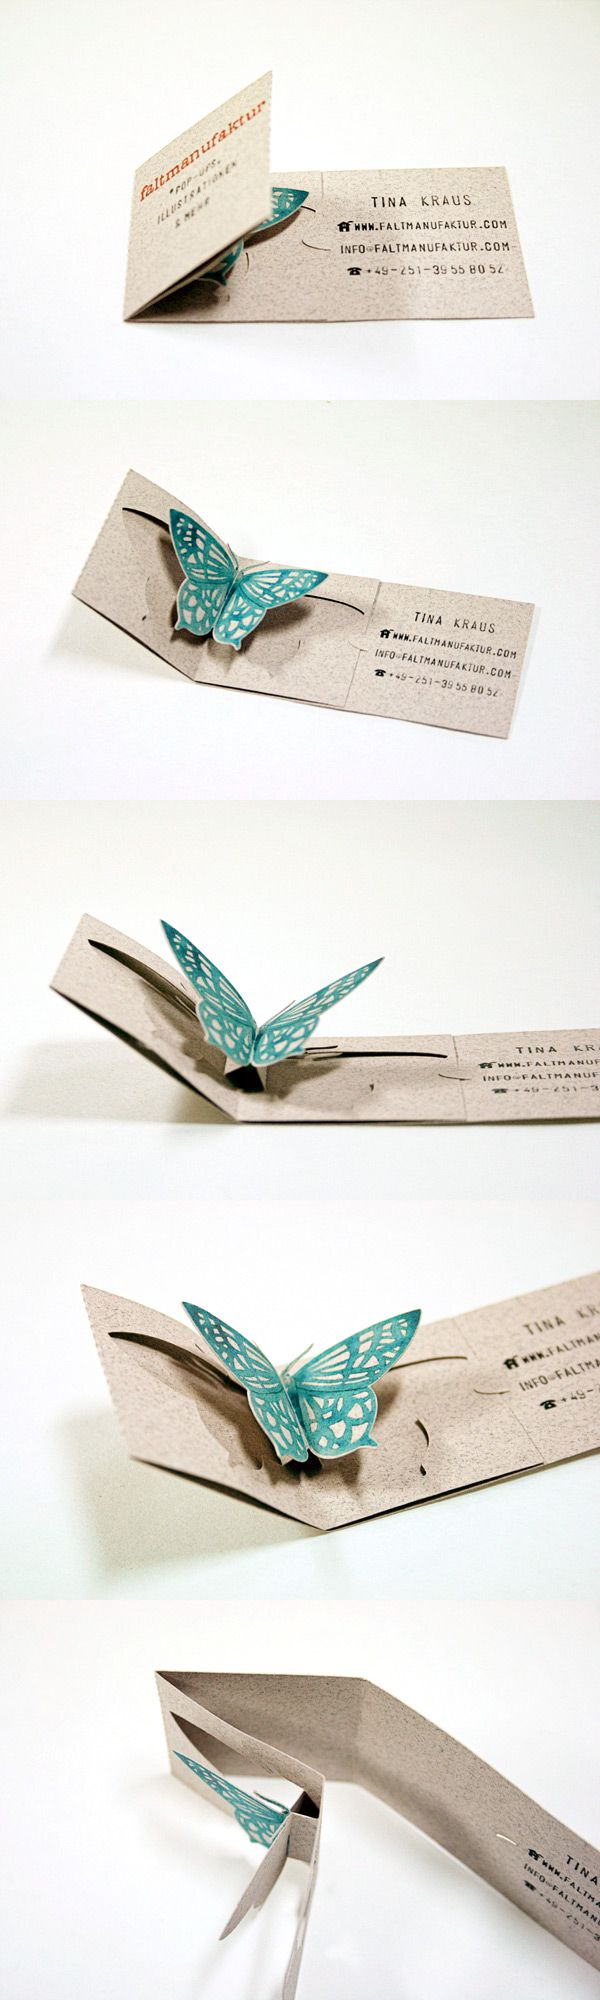 Pin By An Geon On Invitation Pinterest Cards Folded Business 3d Origami Swan Love Boat Diagram Flickr Photo Sharing Cute Folding Card Idea Long Time From Now To Do This